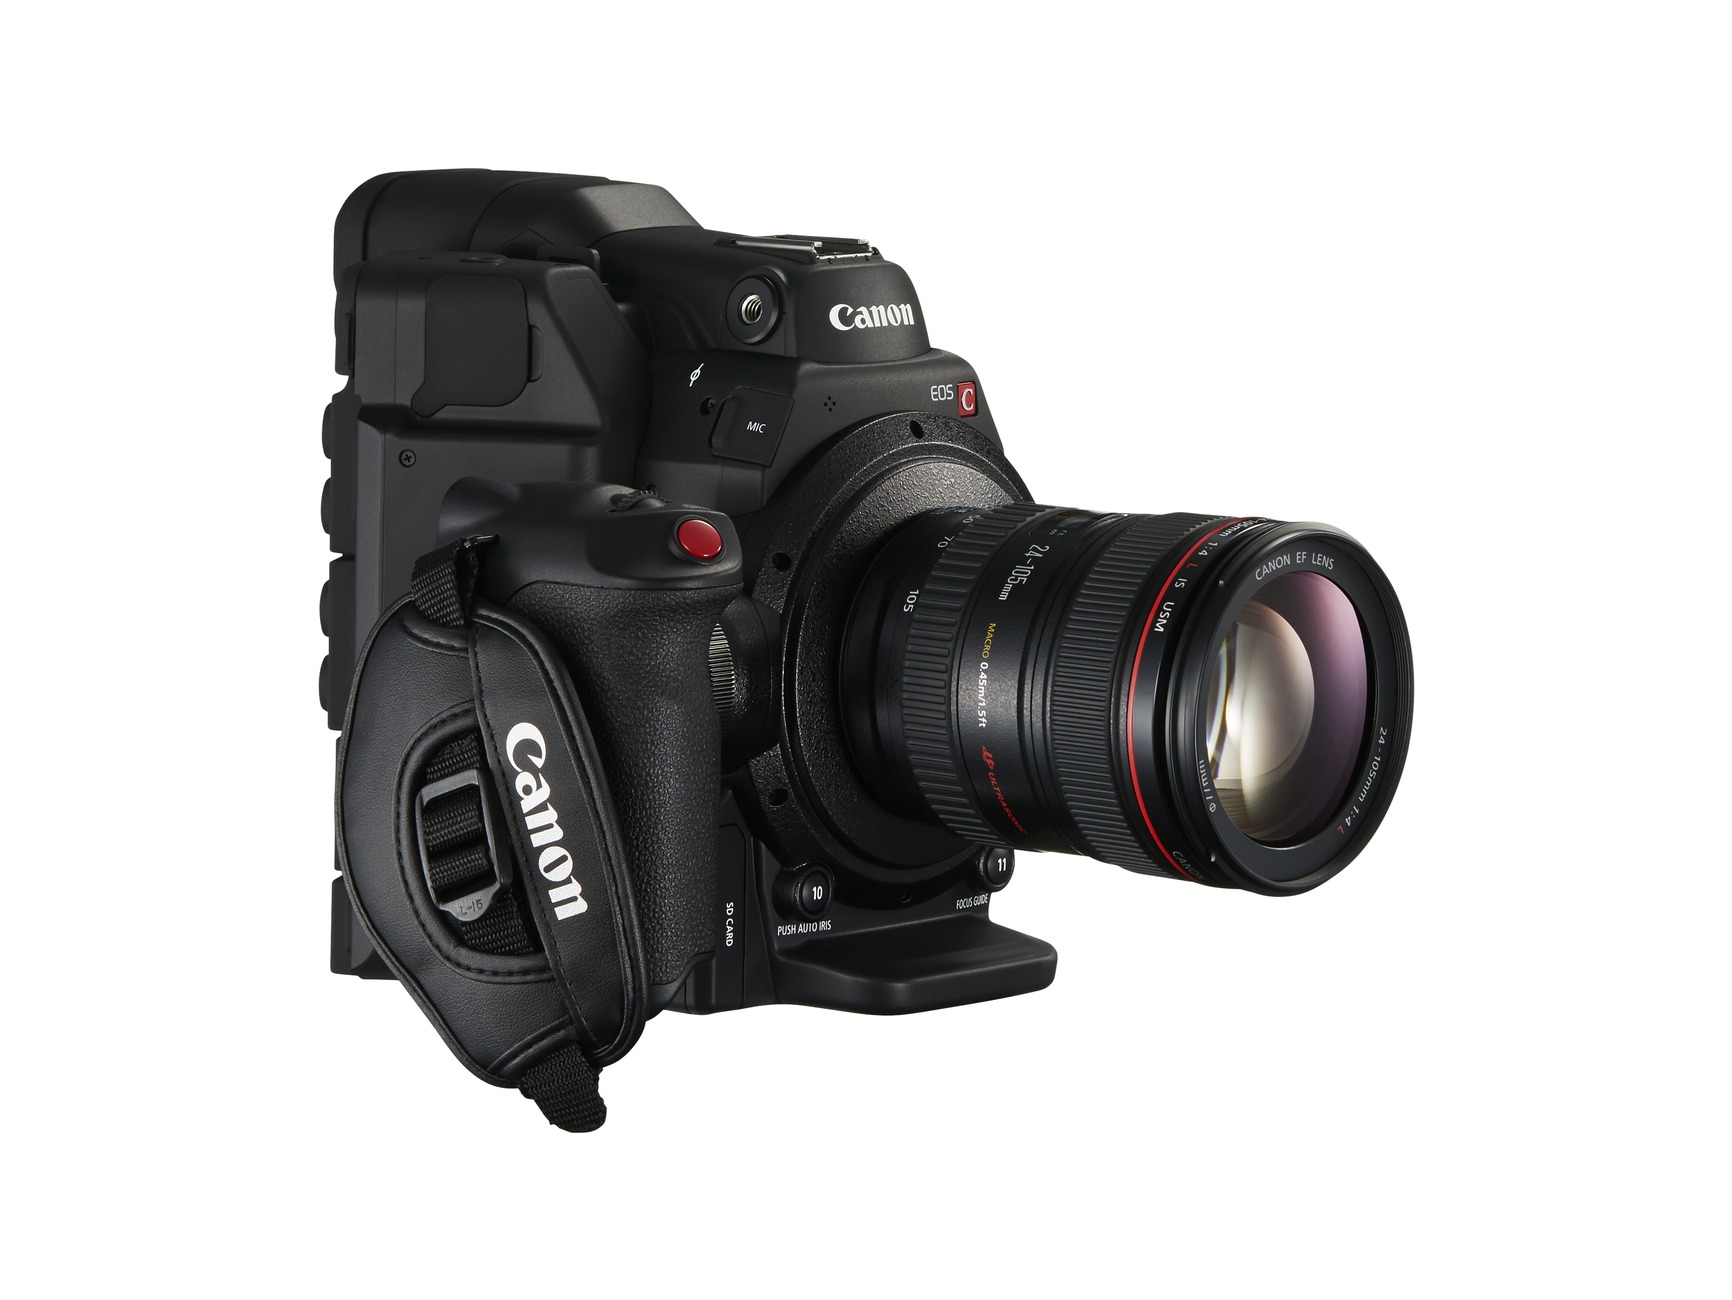 EOS C300 Mark II FSR 24-105 f4L Grip